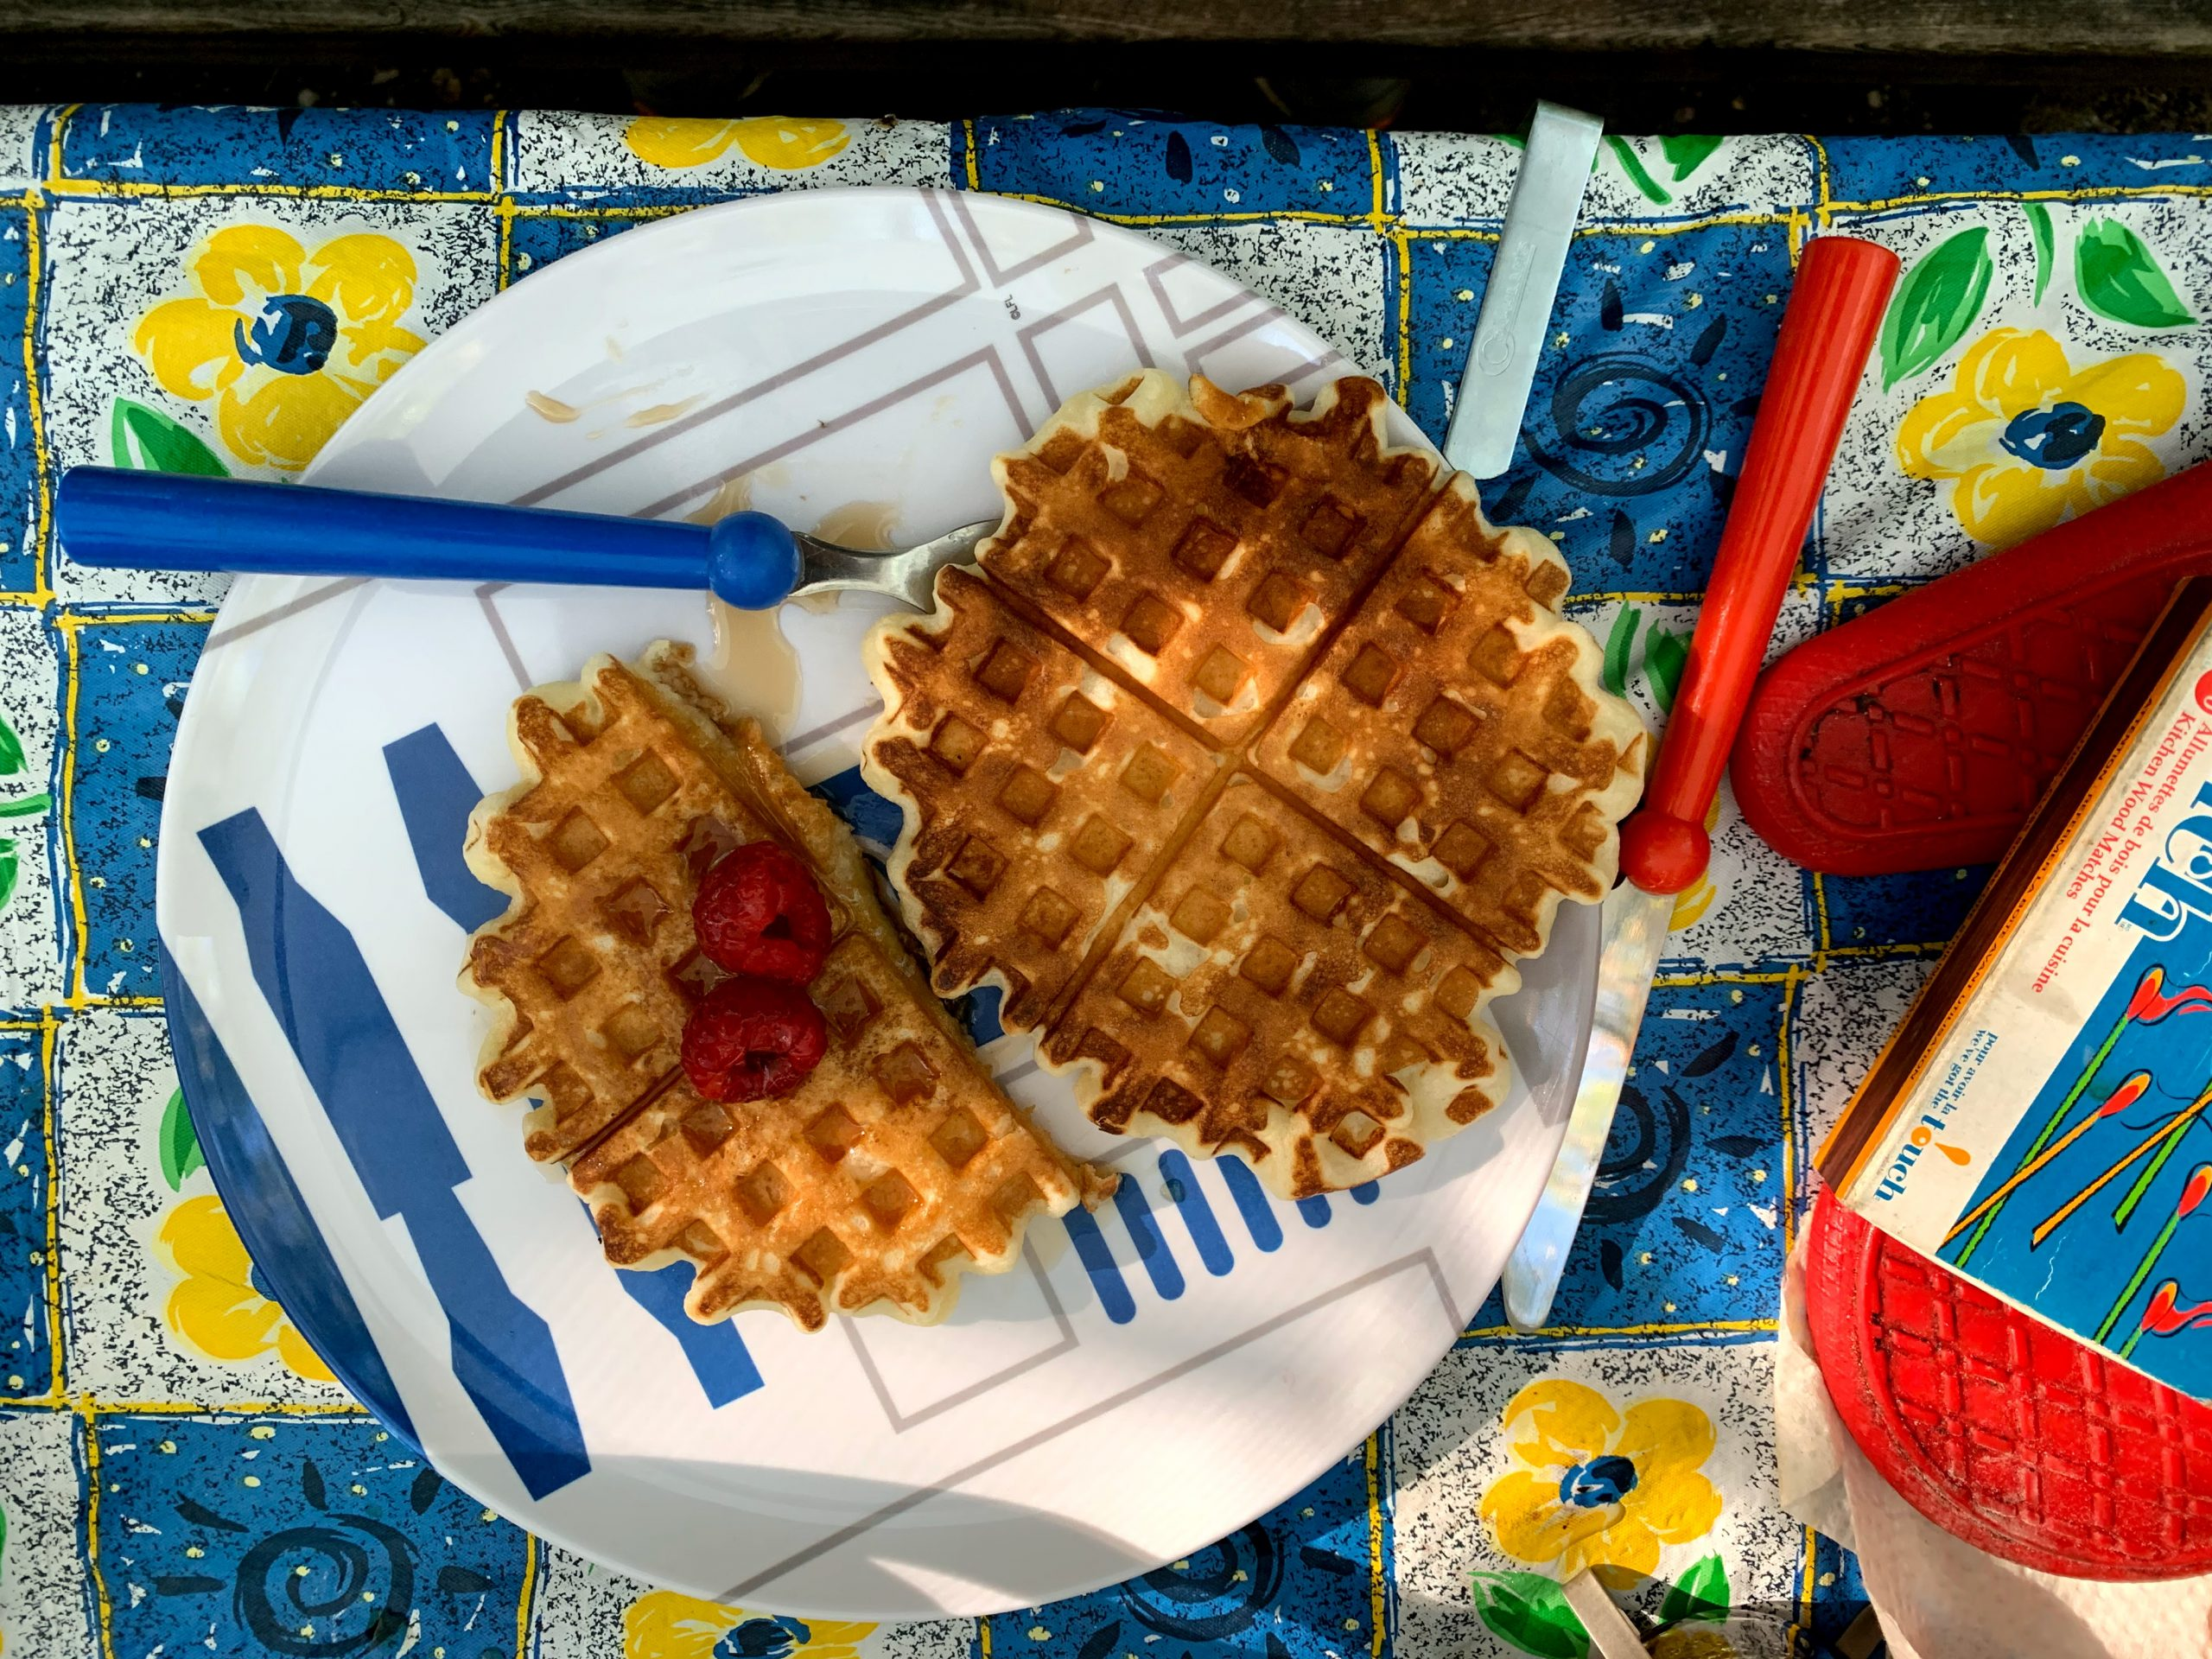 A plate of waffles on a colourful plate and picnic table setting.